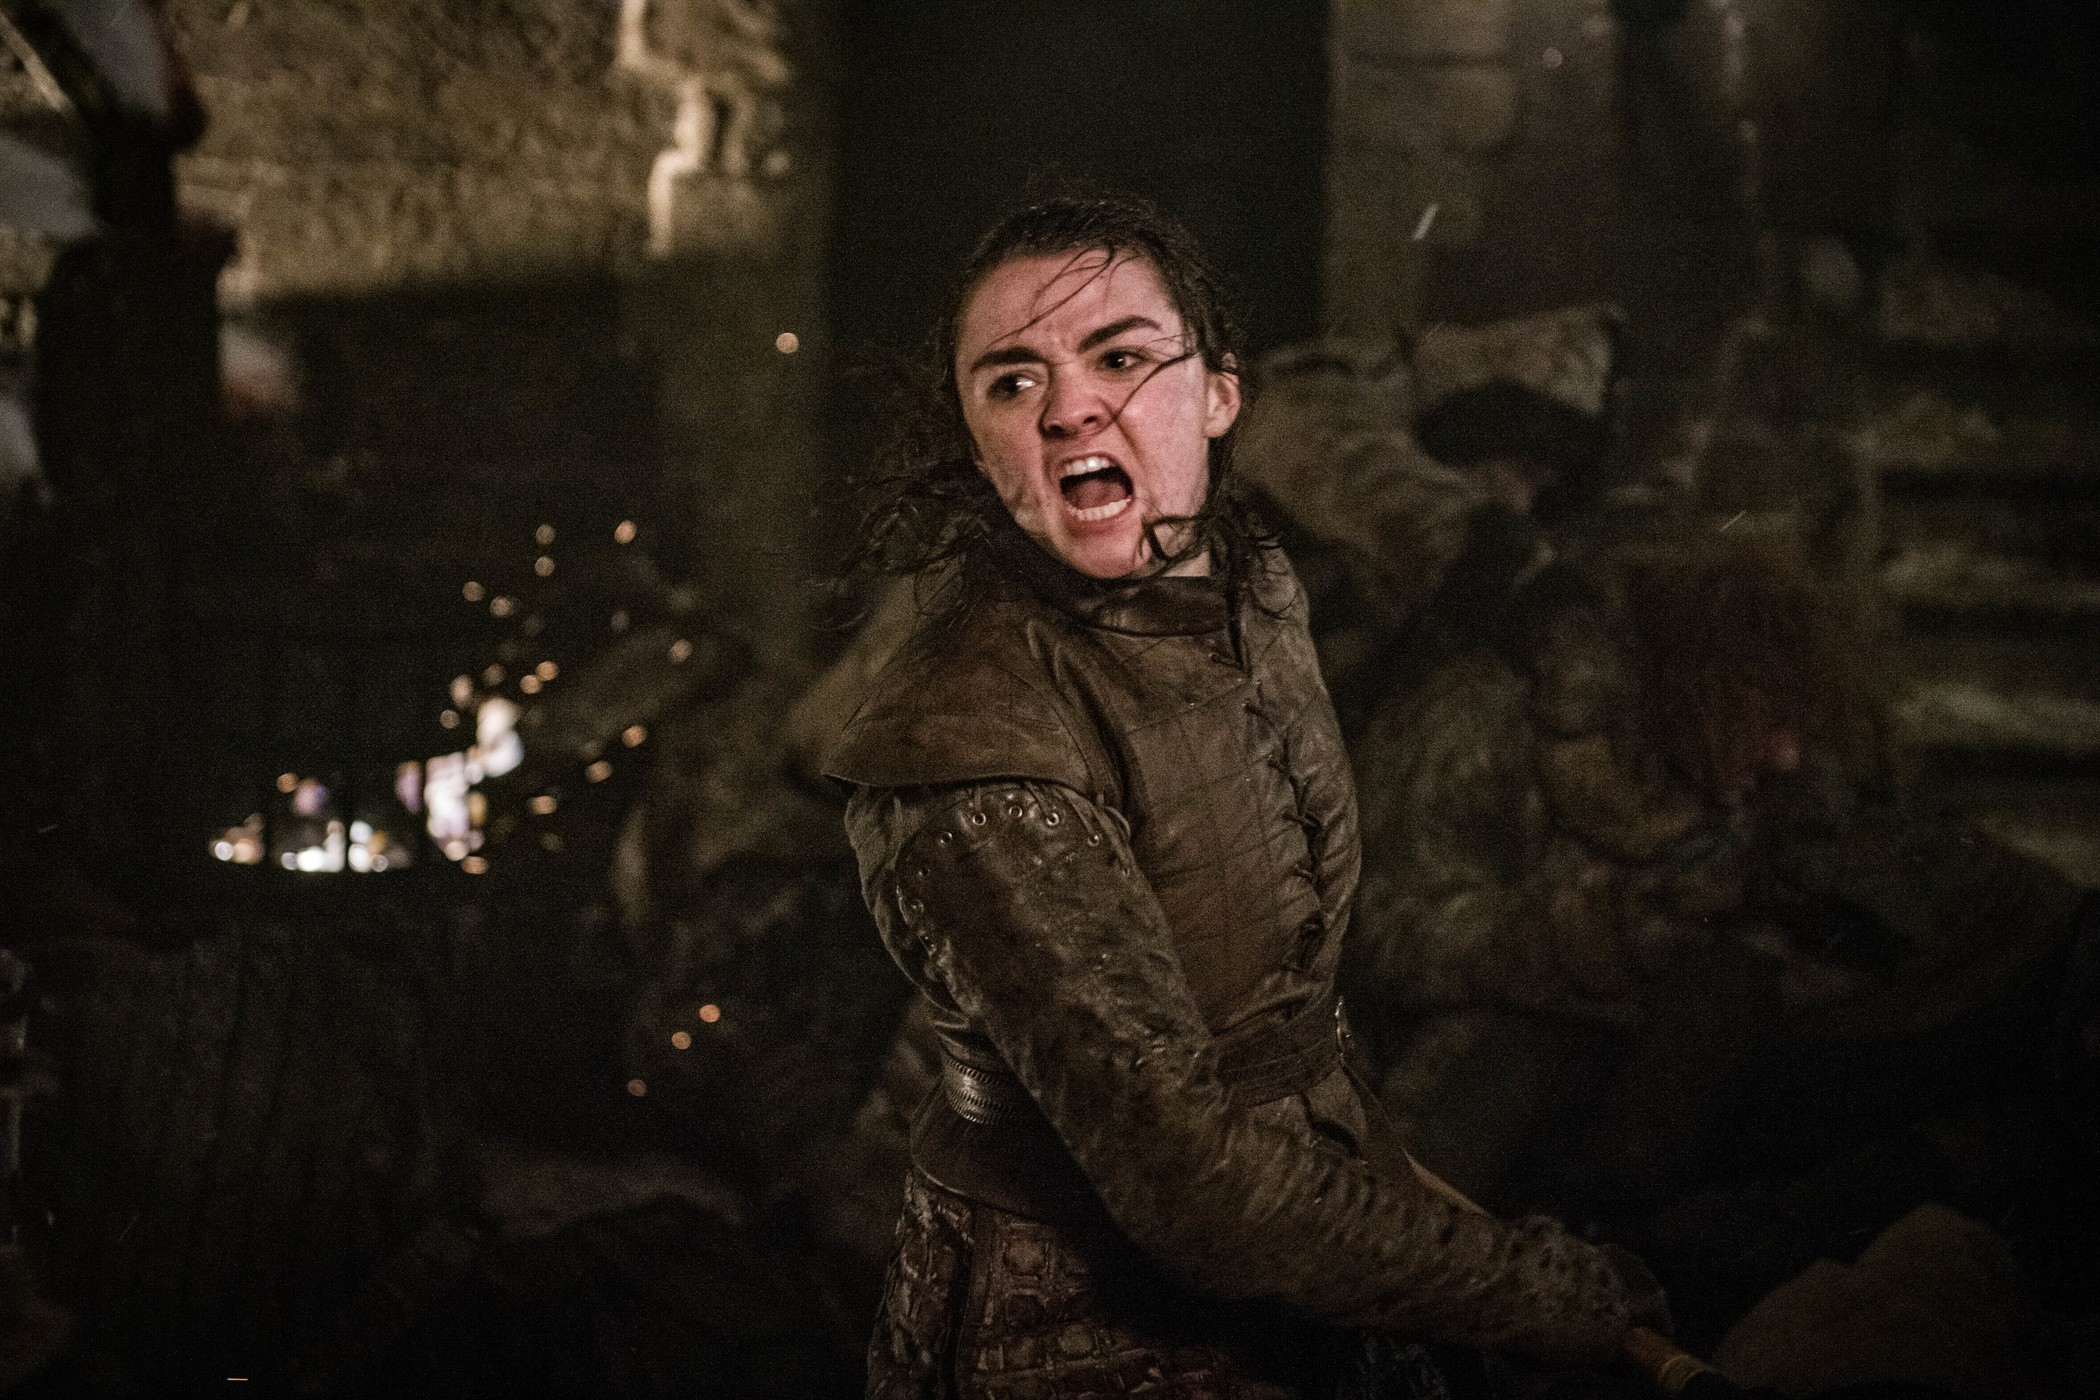 Game of Thrones S08E03: The Long Night - Resumen y comentarios 1